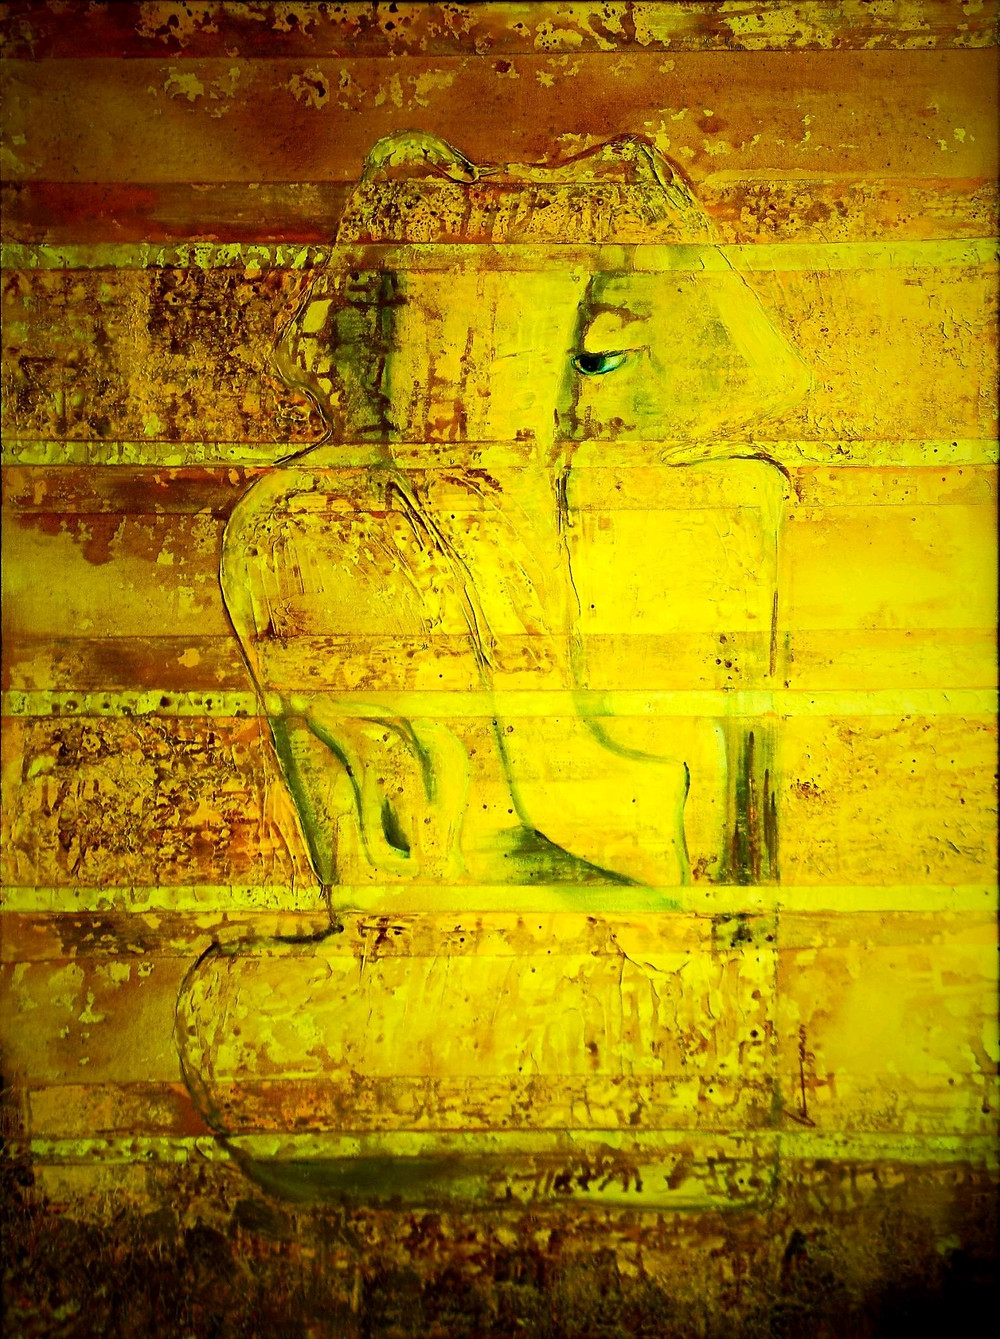 "KAPILAYA- THE YELLOWISH BROWN HUED LORD  This is an artwork depicting THE ELEPHANT GOD - known as Ganesha in Vedic Hindu Mythology. The artist describes her process of making this artwork as an emotional connect in her words  ""When love is what you seek! You callout, You search, You admire! Worshiping a Deity, is almost like building a human relationship, here the attribute of KAPILAYA is a form dipped in sheer yellow! The Hue of ""Turmeric"", a sacred offering to the lord! I recall painting this, with pots of yellow like bathing the lord in sacred turmeric waters, it was paint was all over the table and the floor... i was walking in it bare feet... around the painting regulating the flow of the paint a lemon hue over the chrome, with ocher and the burntseinnas... wiping,  sponging,,, splattering little did i know it was emergence of KAPILAYA! Till he manifested!! I now feel a part of him at times!"""